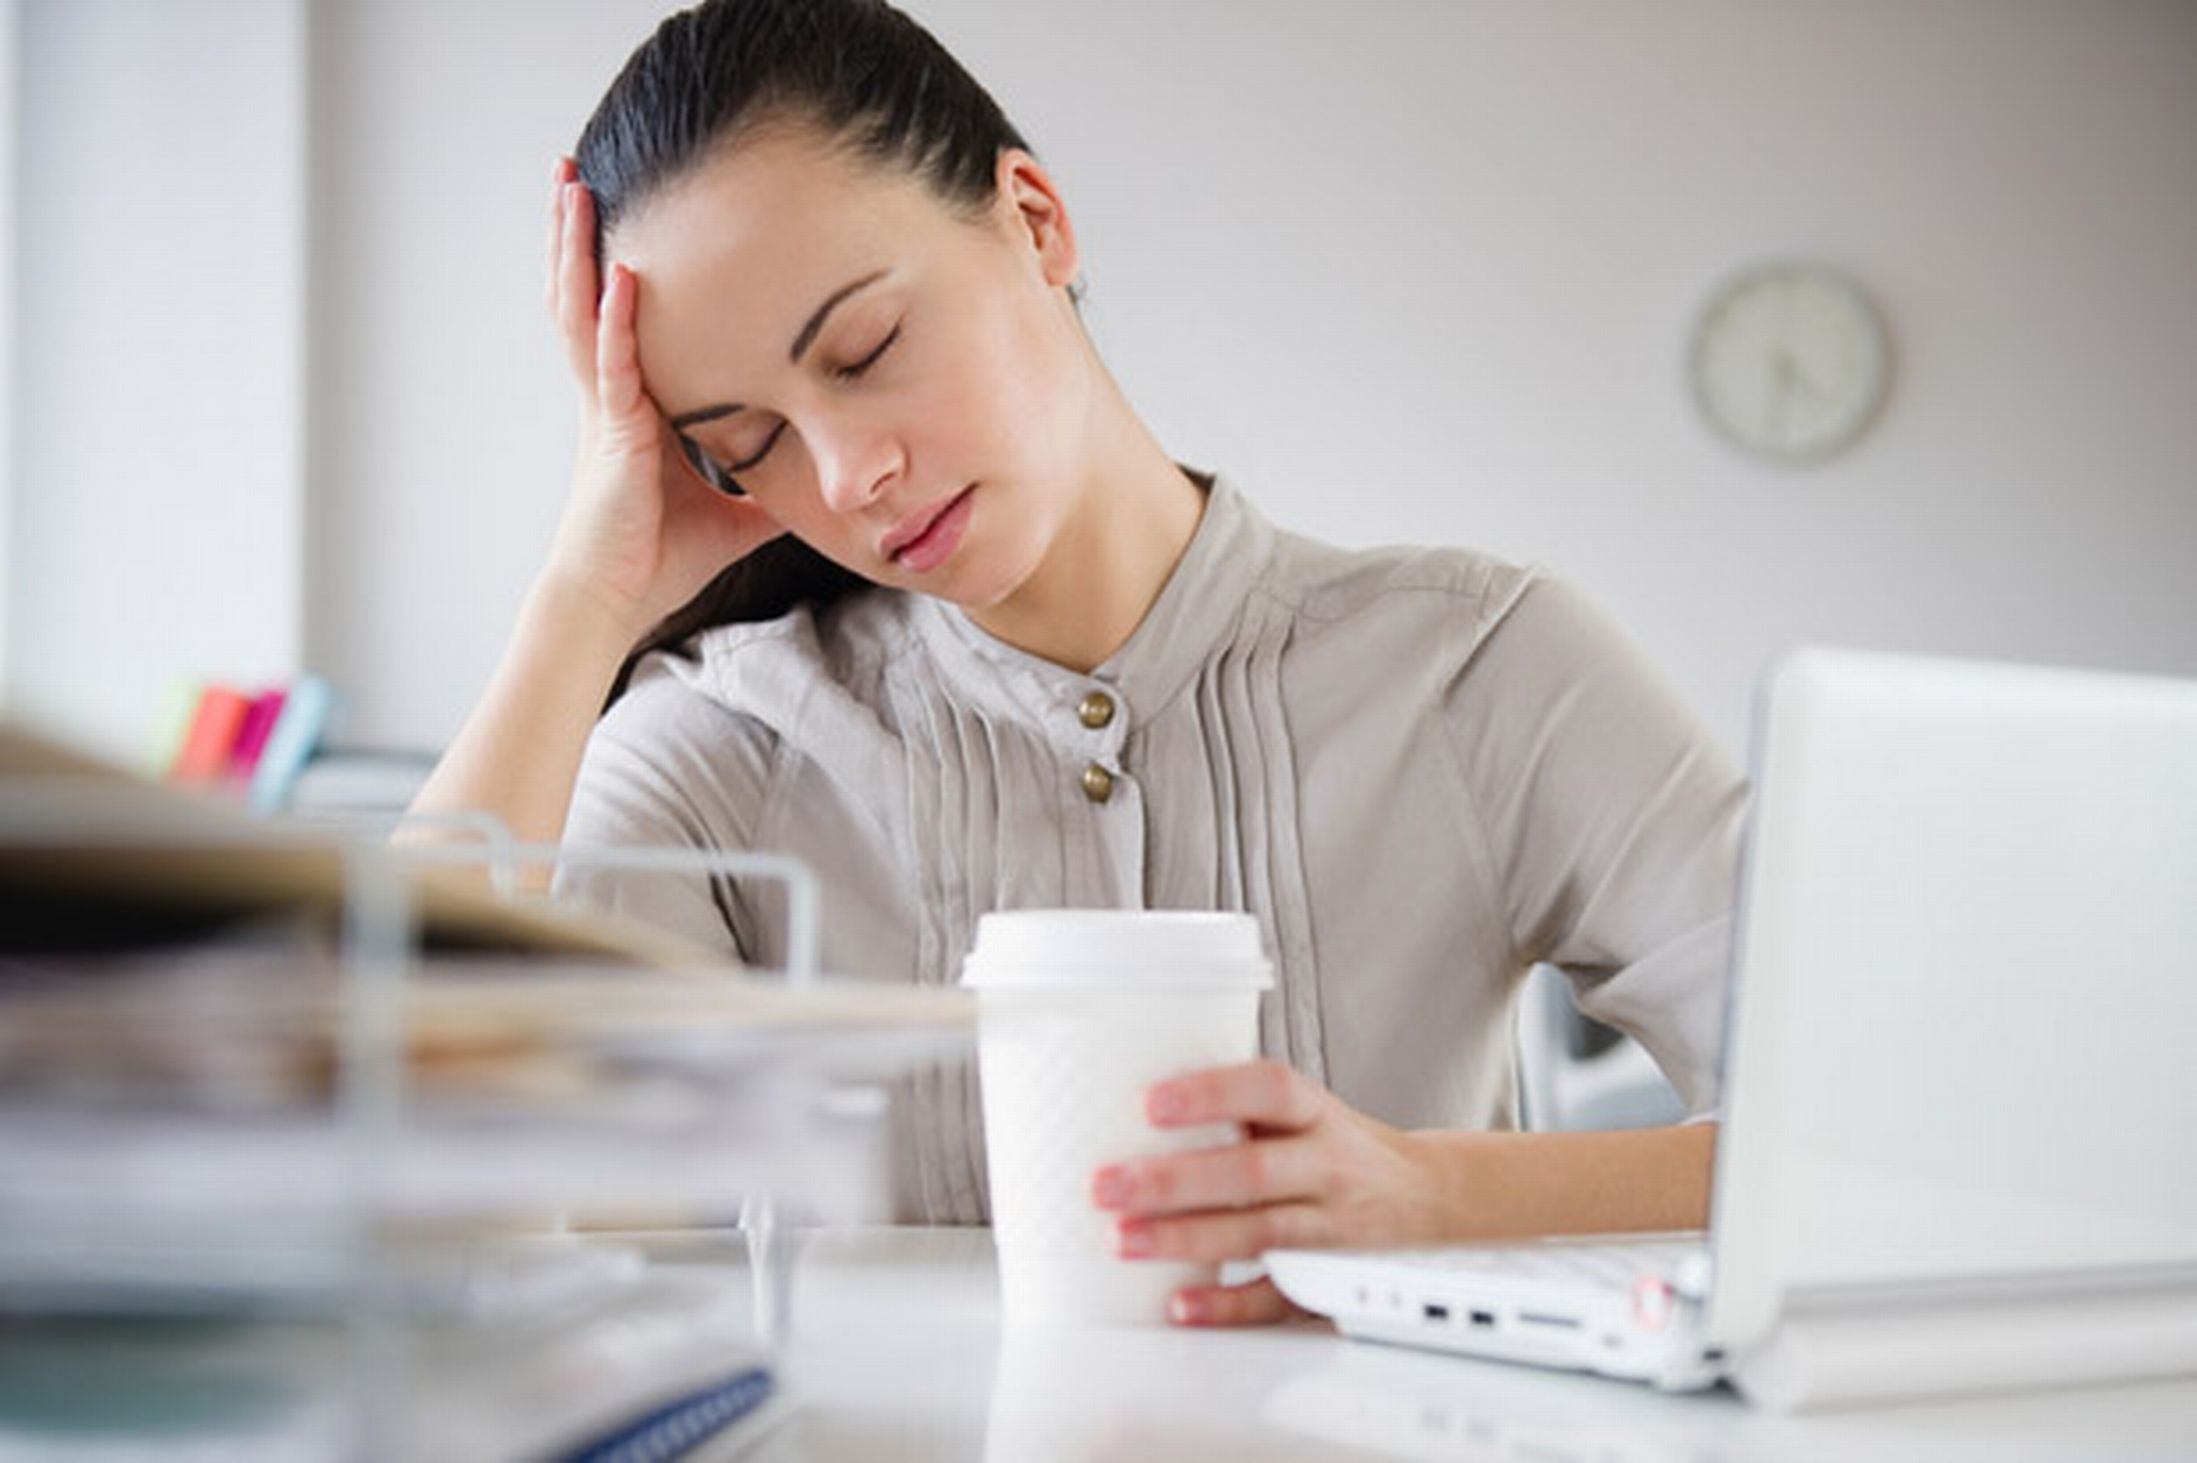 a-woman-exhausted-sitting-at-her-desk-with-a-cup-of-coffee